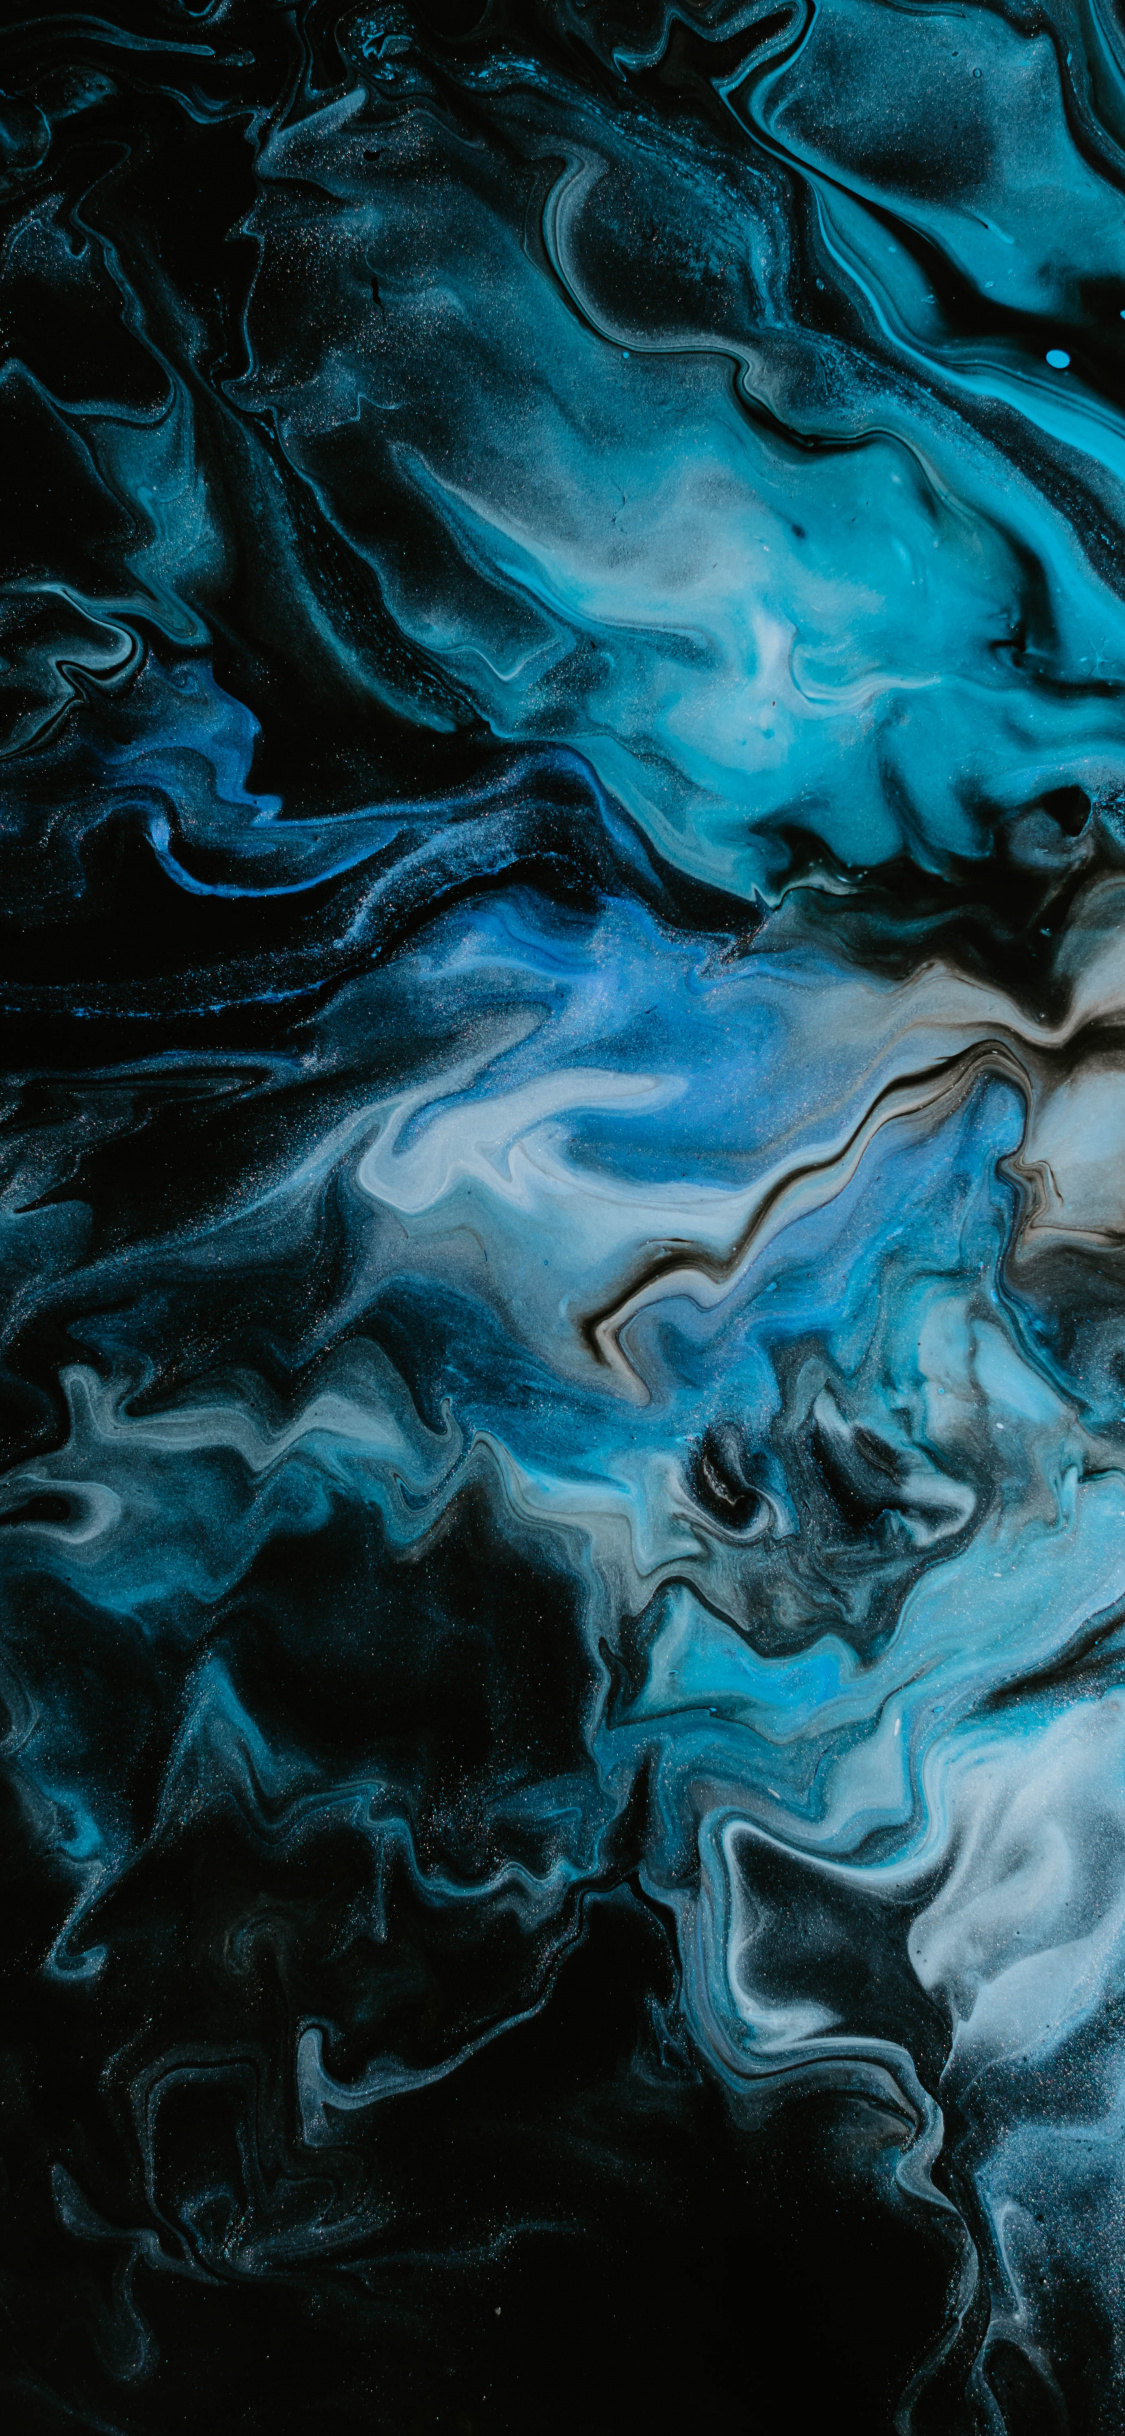 Stains, Paint, Acrylic Dark-blue, Wallpaper - Acrylic Paint Wallpaper Hd Iphone Blue - HD Wallpaper